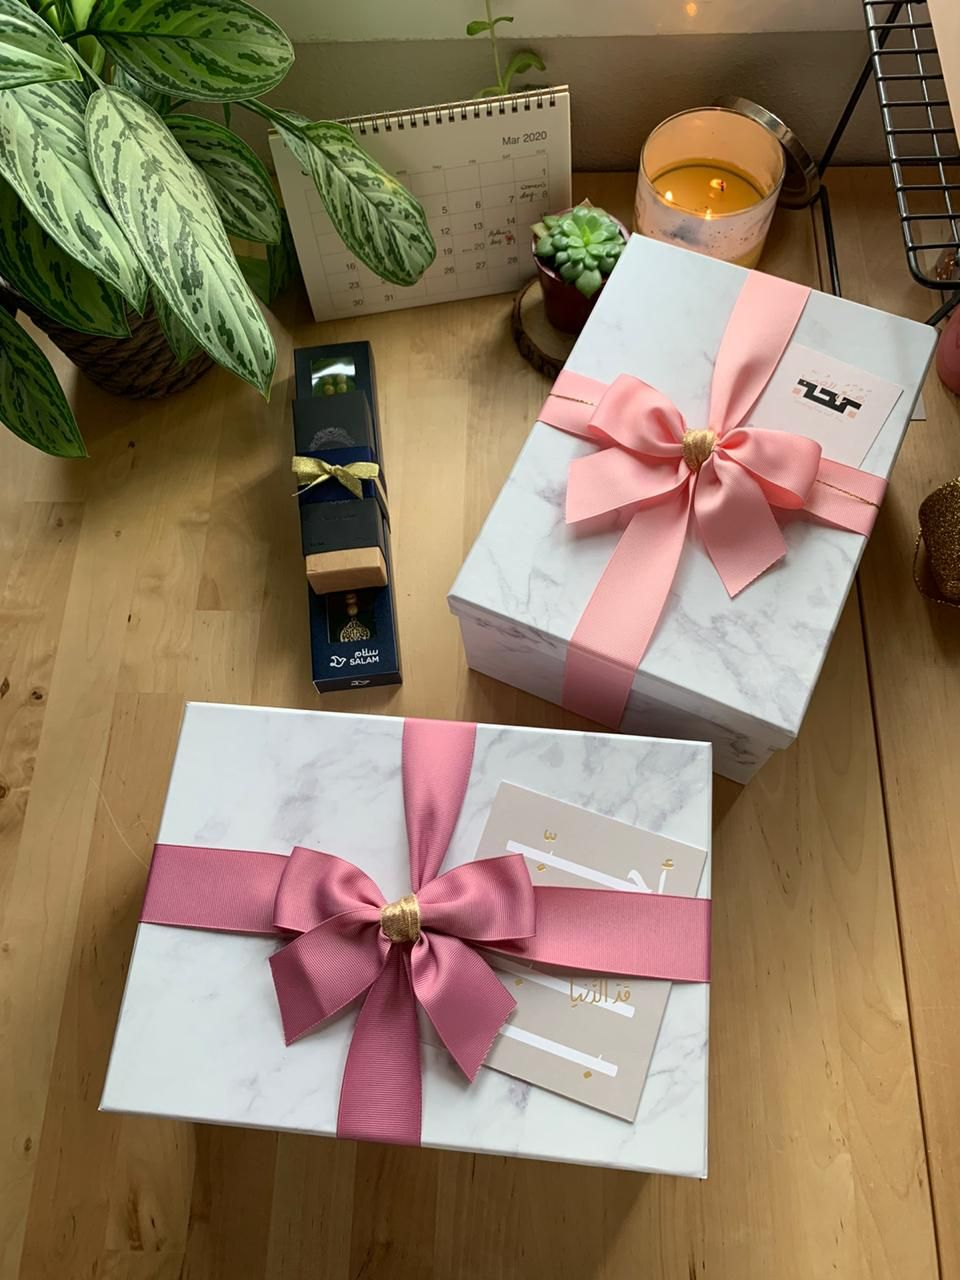 ب ح ب Withlove In 2020 Gifts Gift Wrapping Wrap